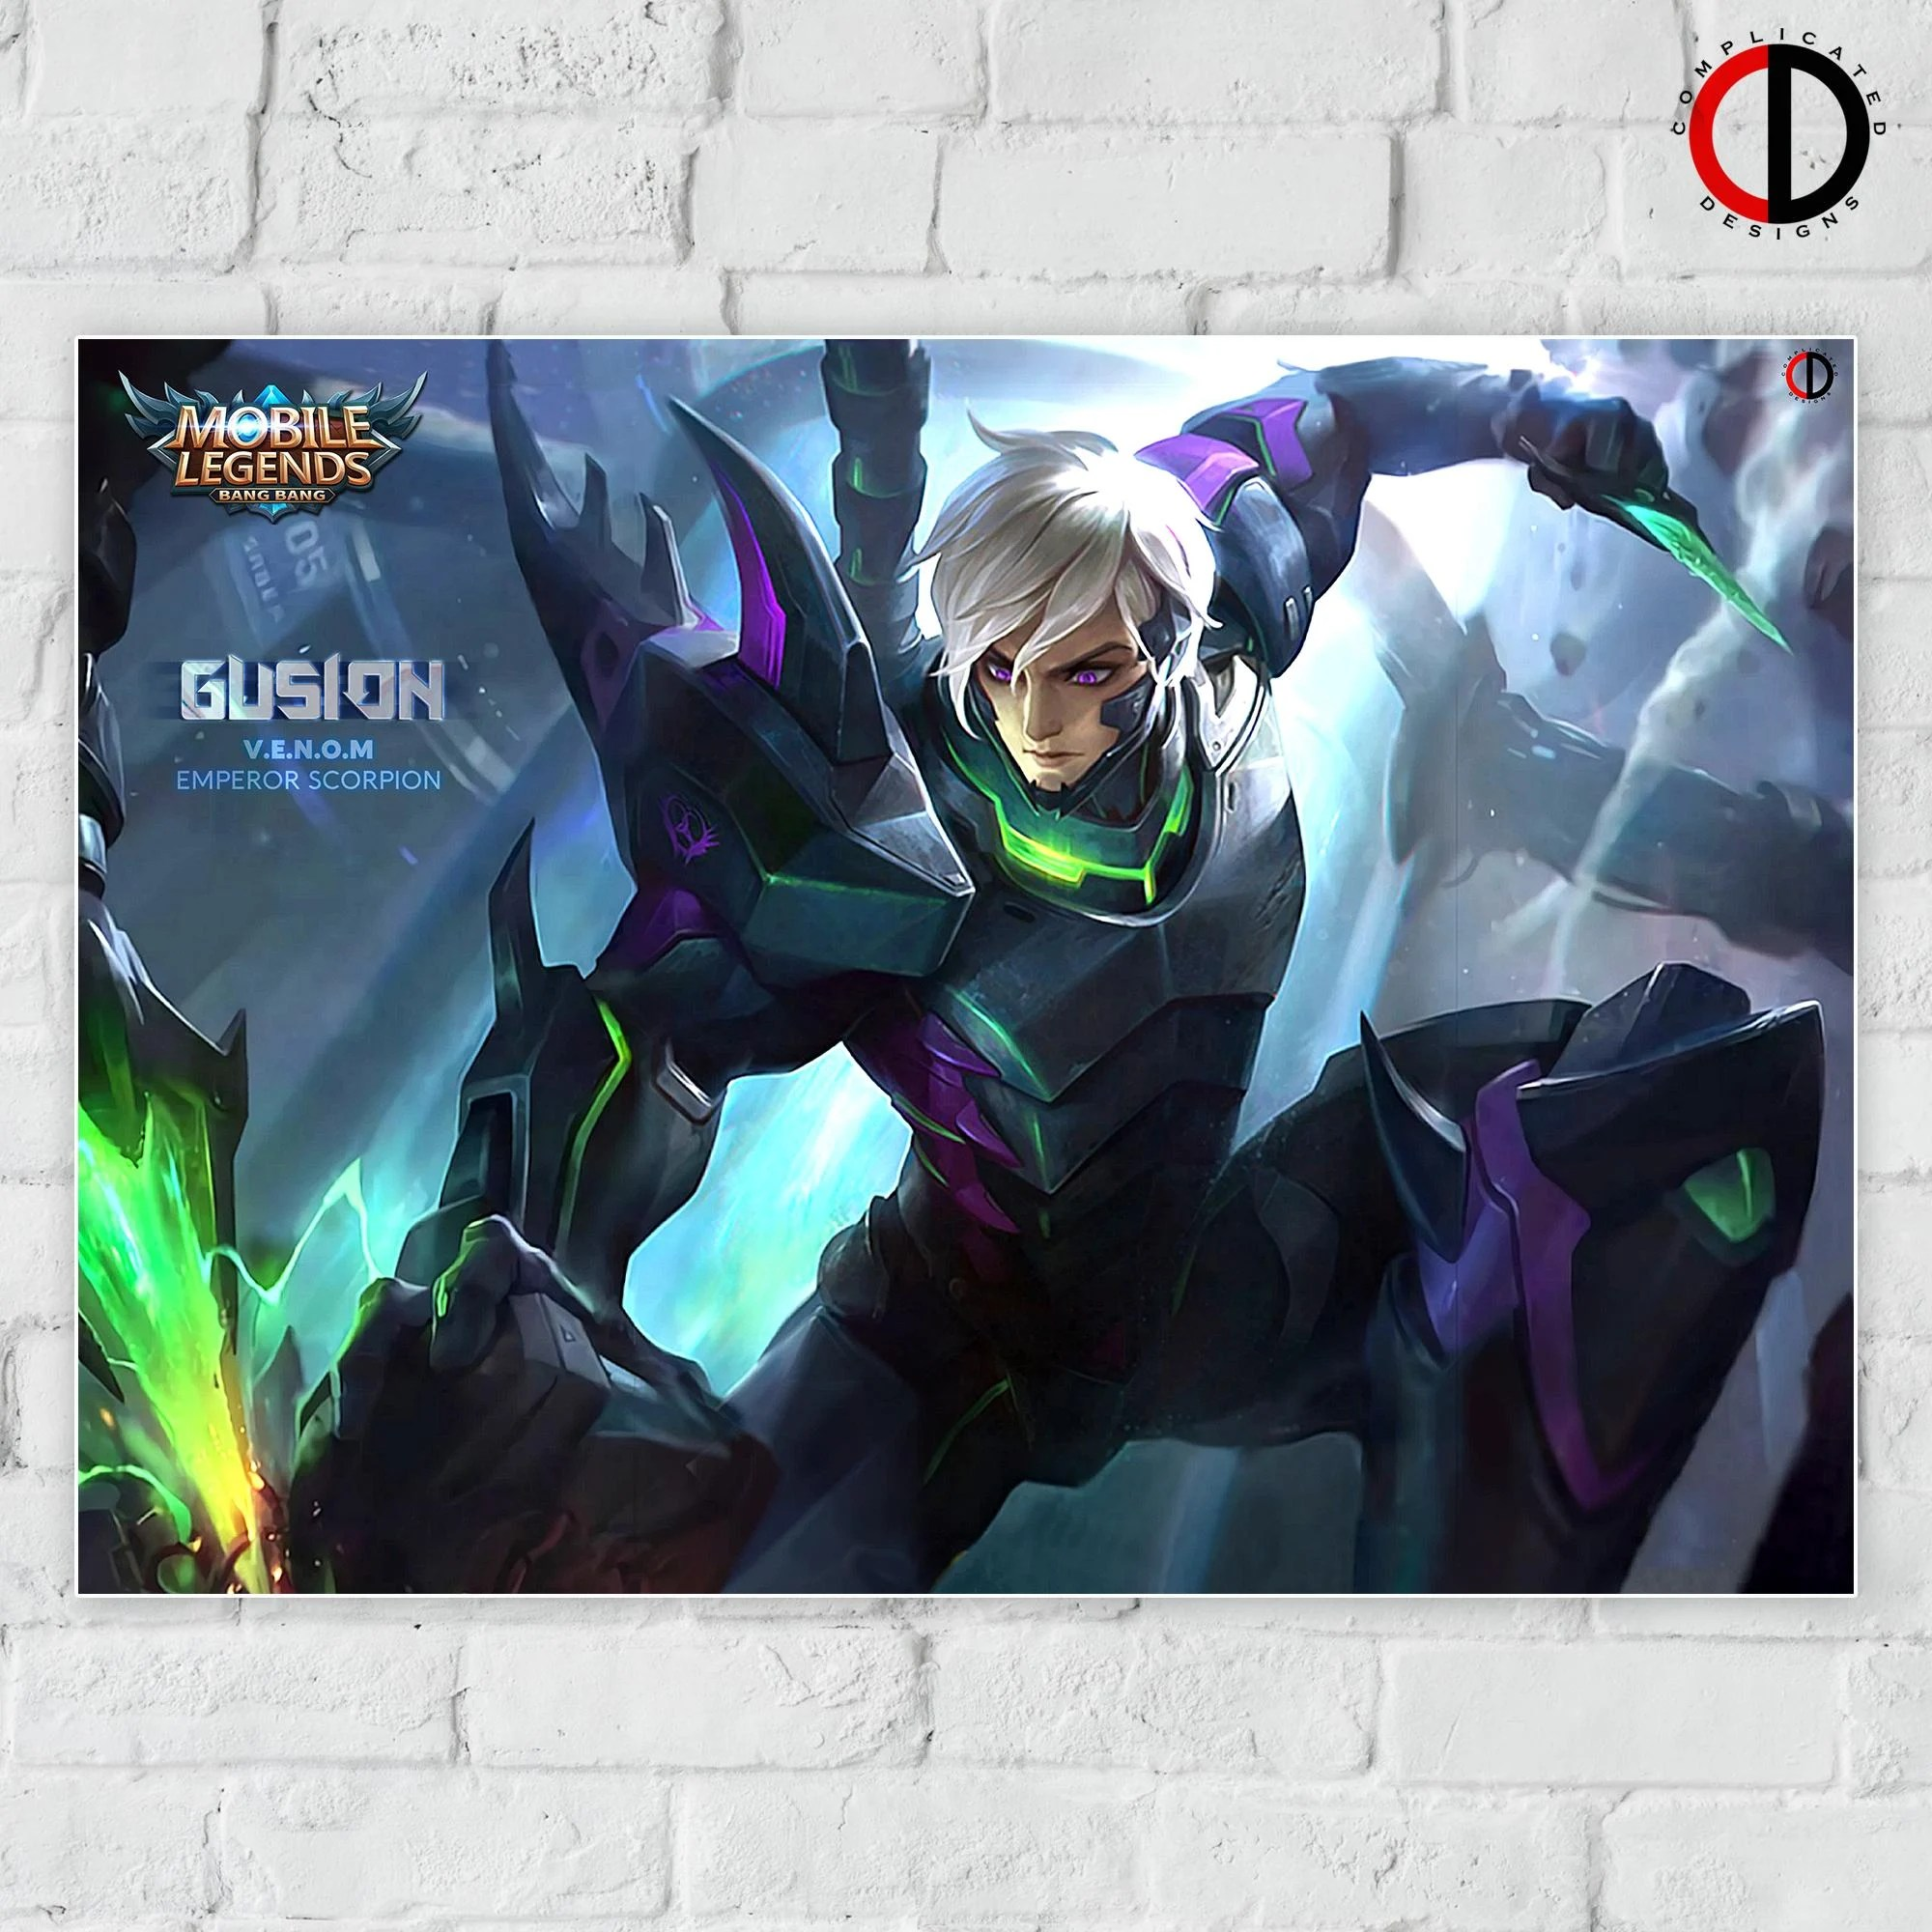 Mobile Legends Gusion Venom Wallpaper Hd Gusion K K O F Skin Vs V E N O M Emperor Scorpion Skin Mobile